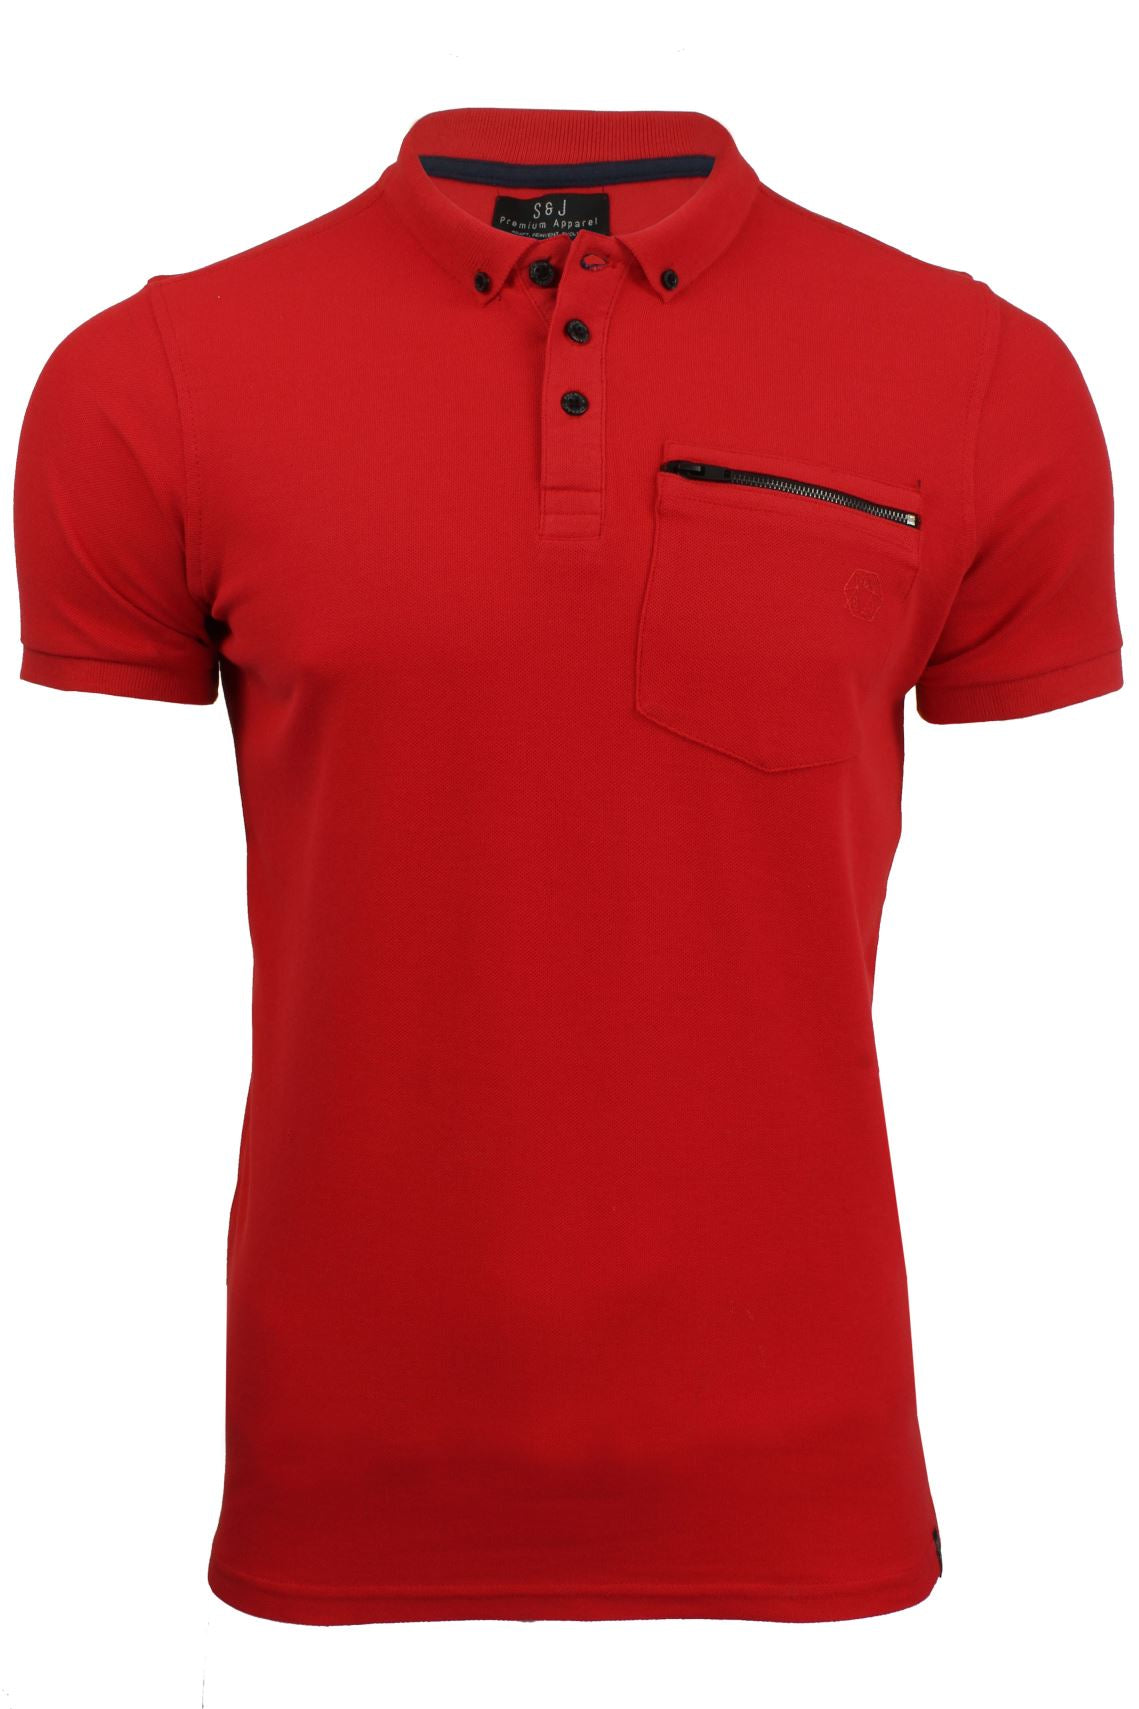 Mens Polo Shirt by Smith & Jones 'Mascaron' Short Sleeved-Main Image